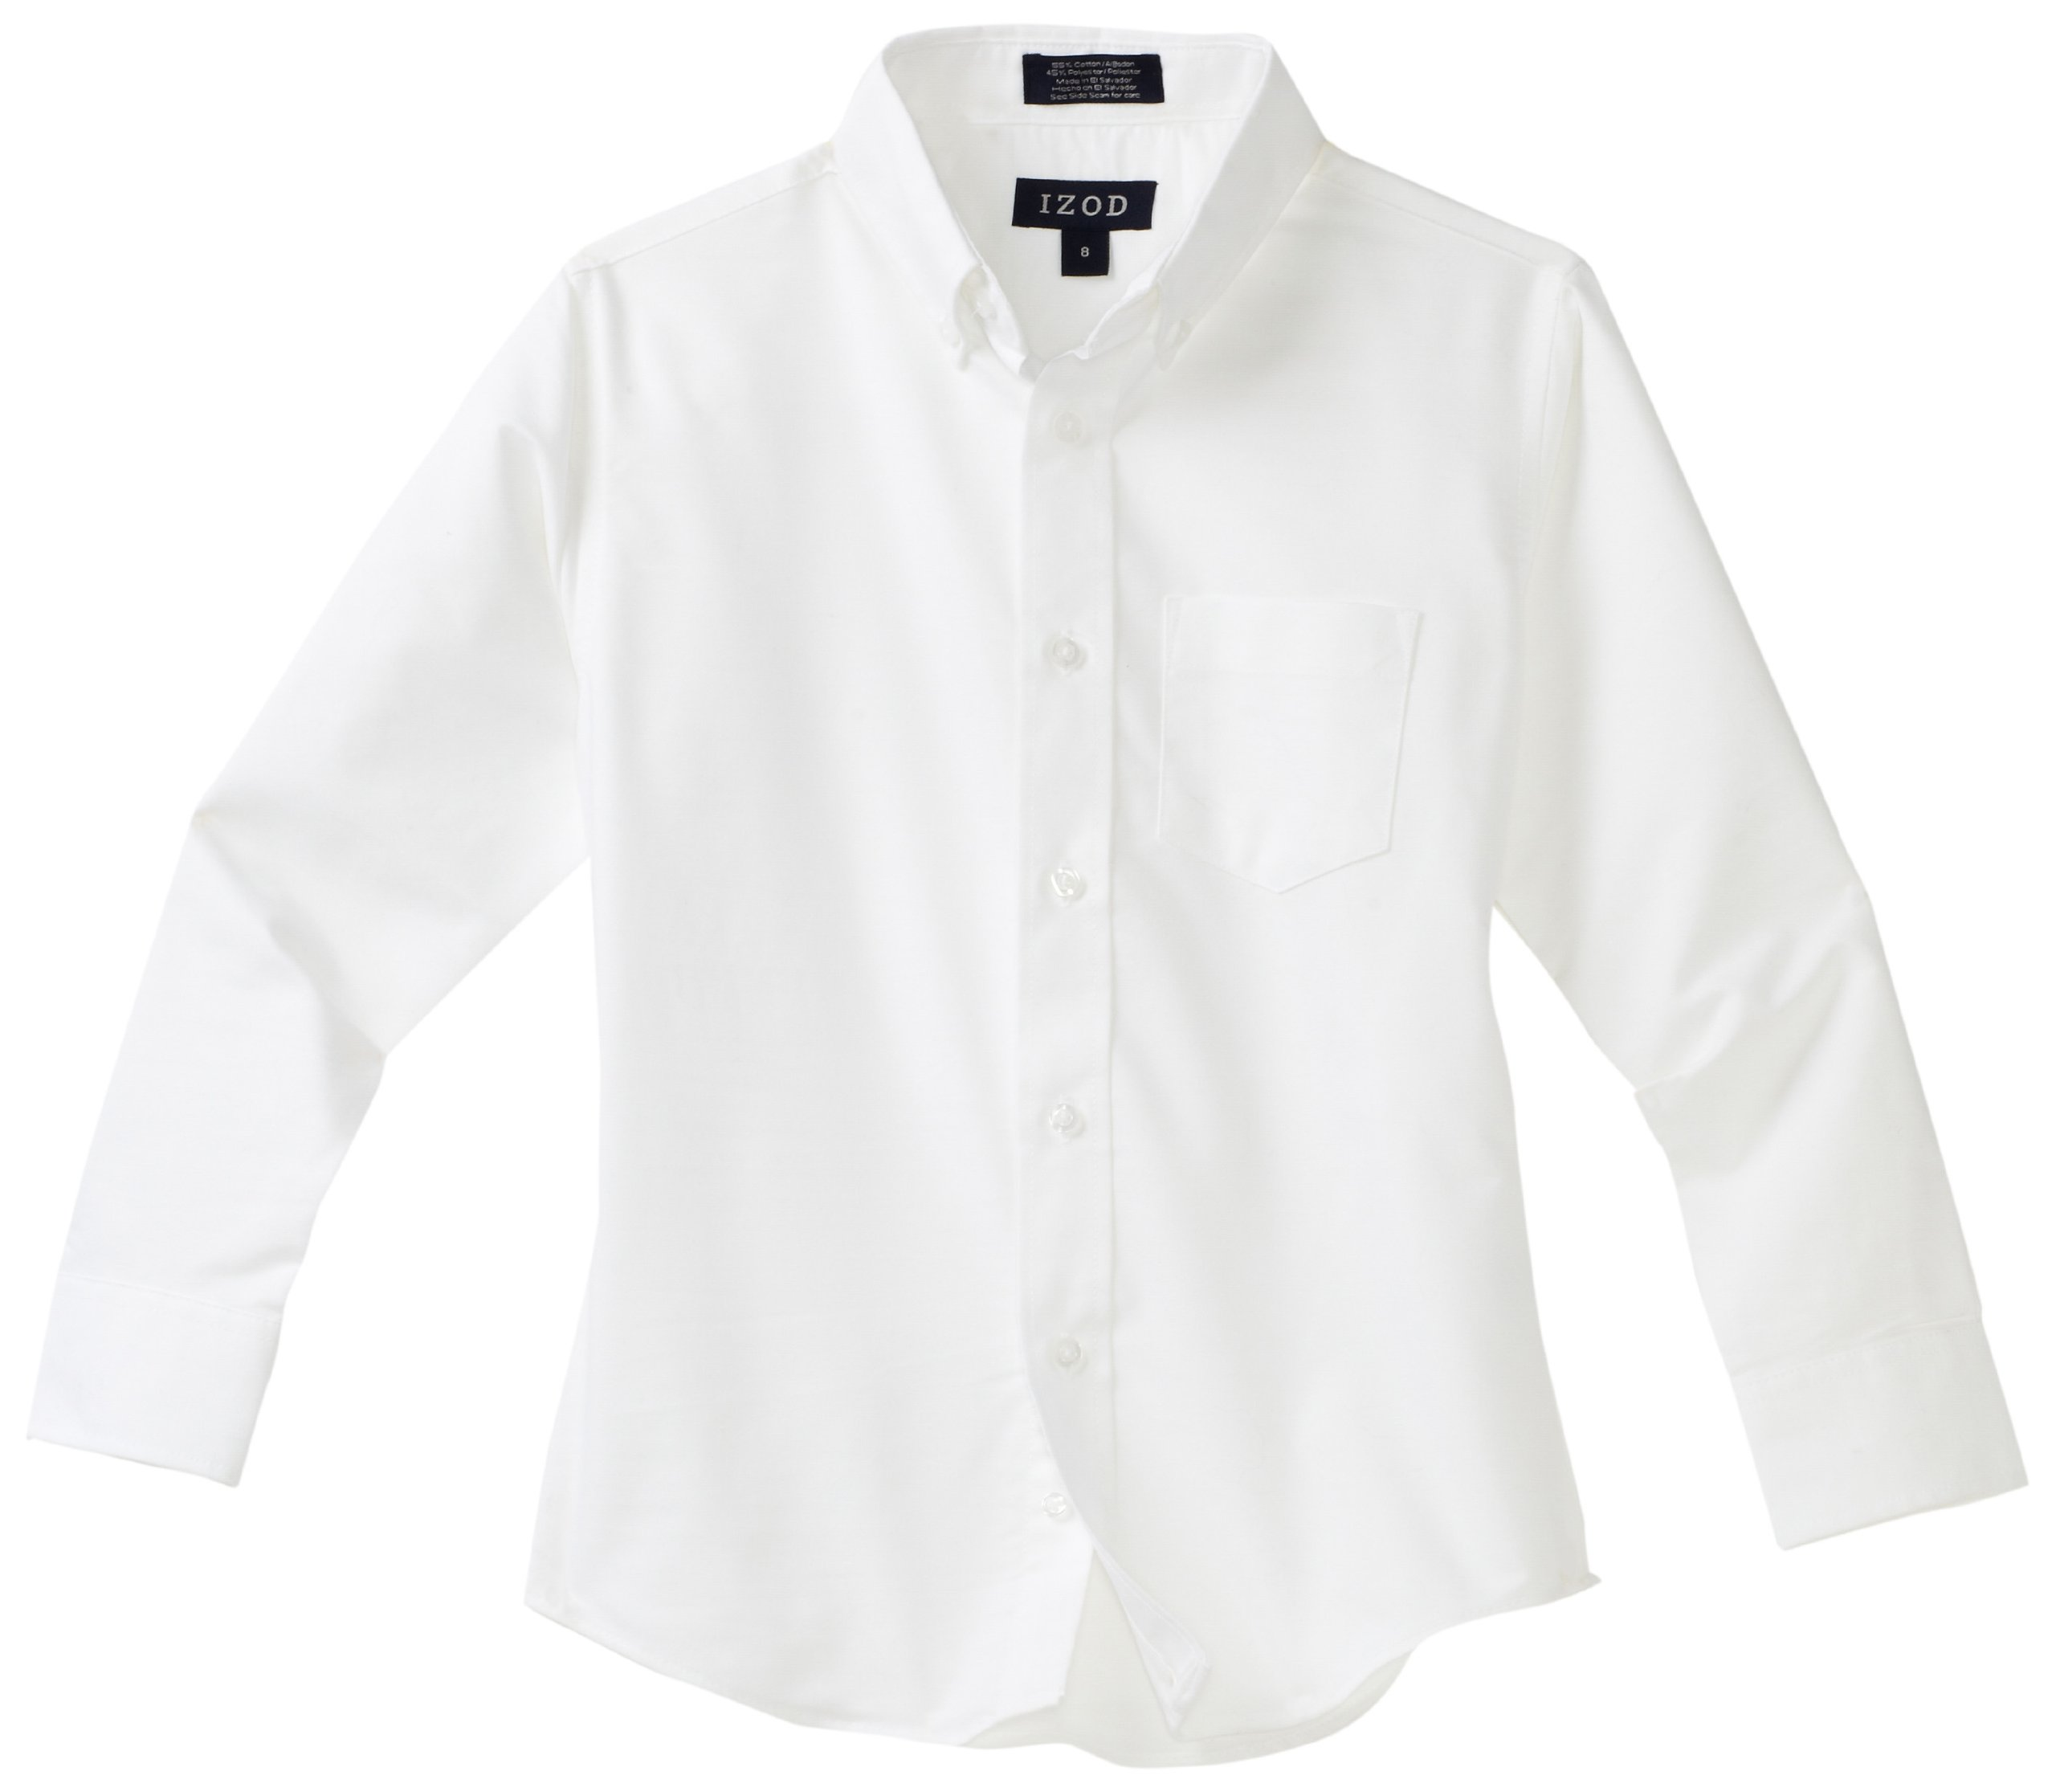 Izod boys Long Sleeve Solid Button-Down Oxford Shirt, White, 16R by IZOD